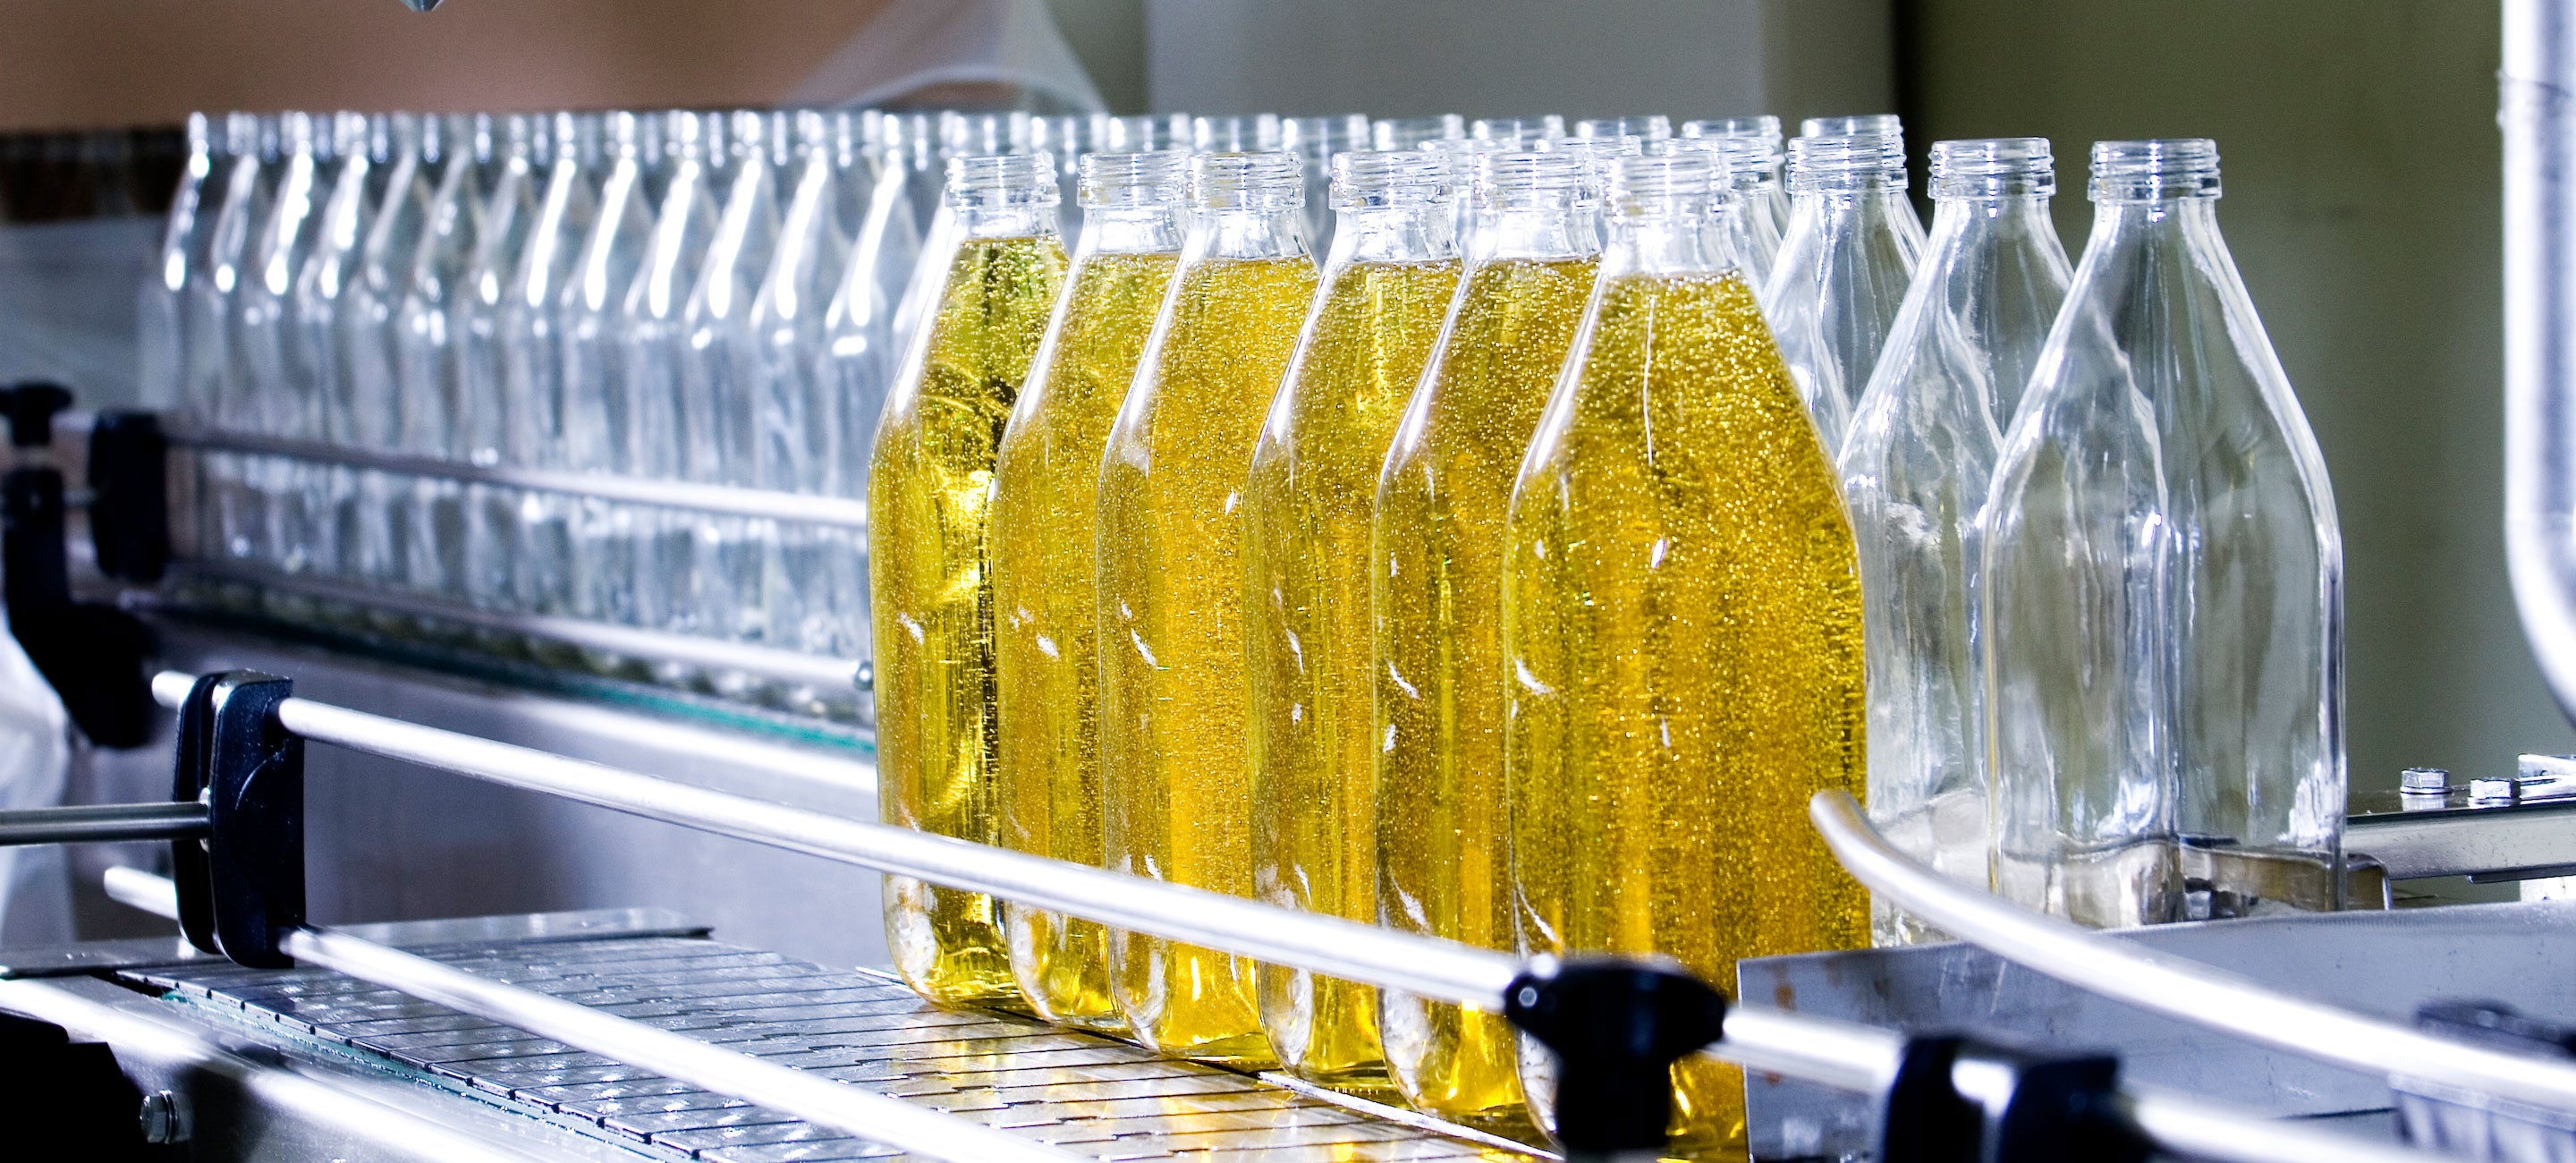 Food and Beverage - Private Label Manufacturing Platform